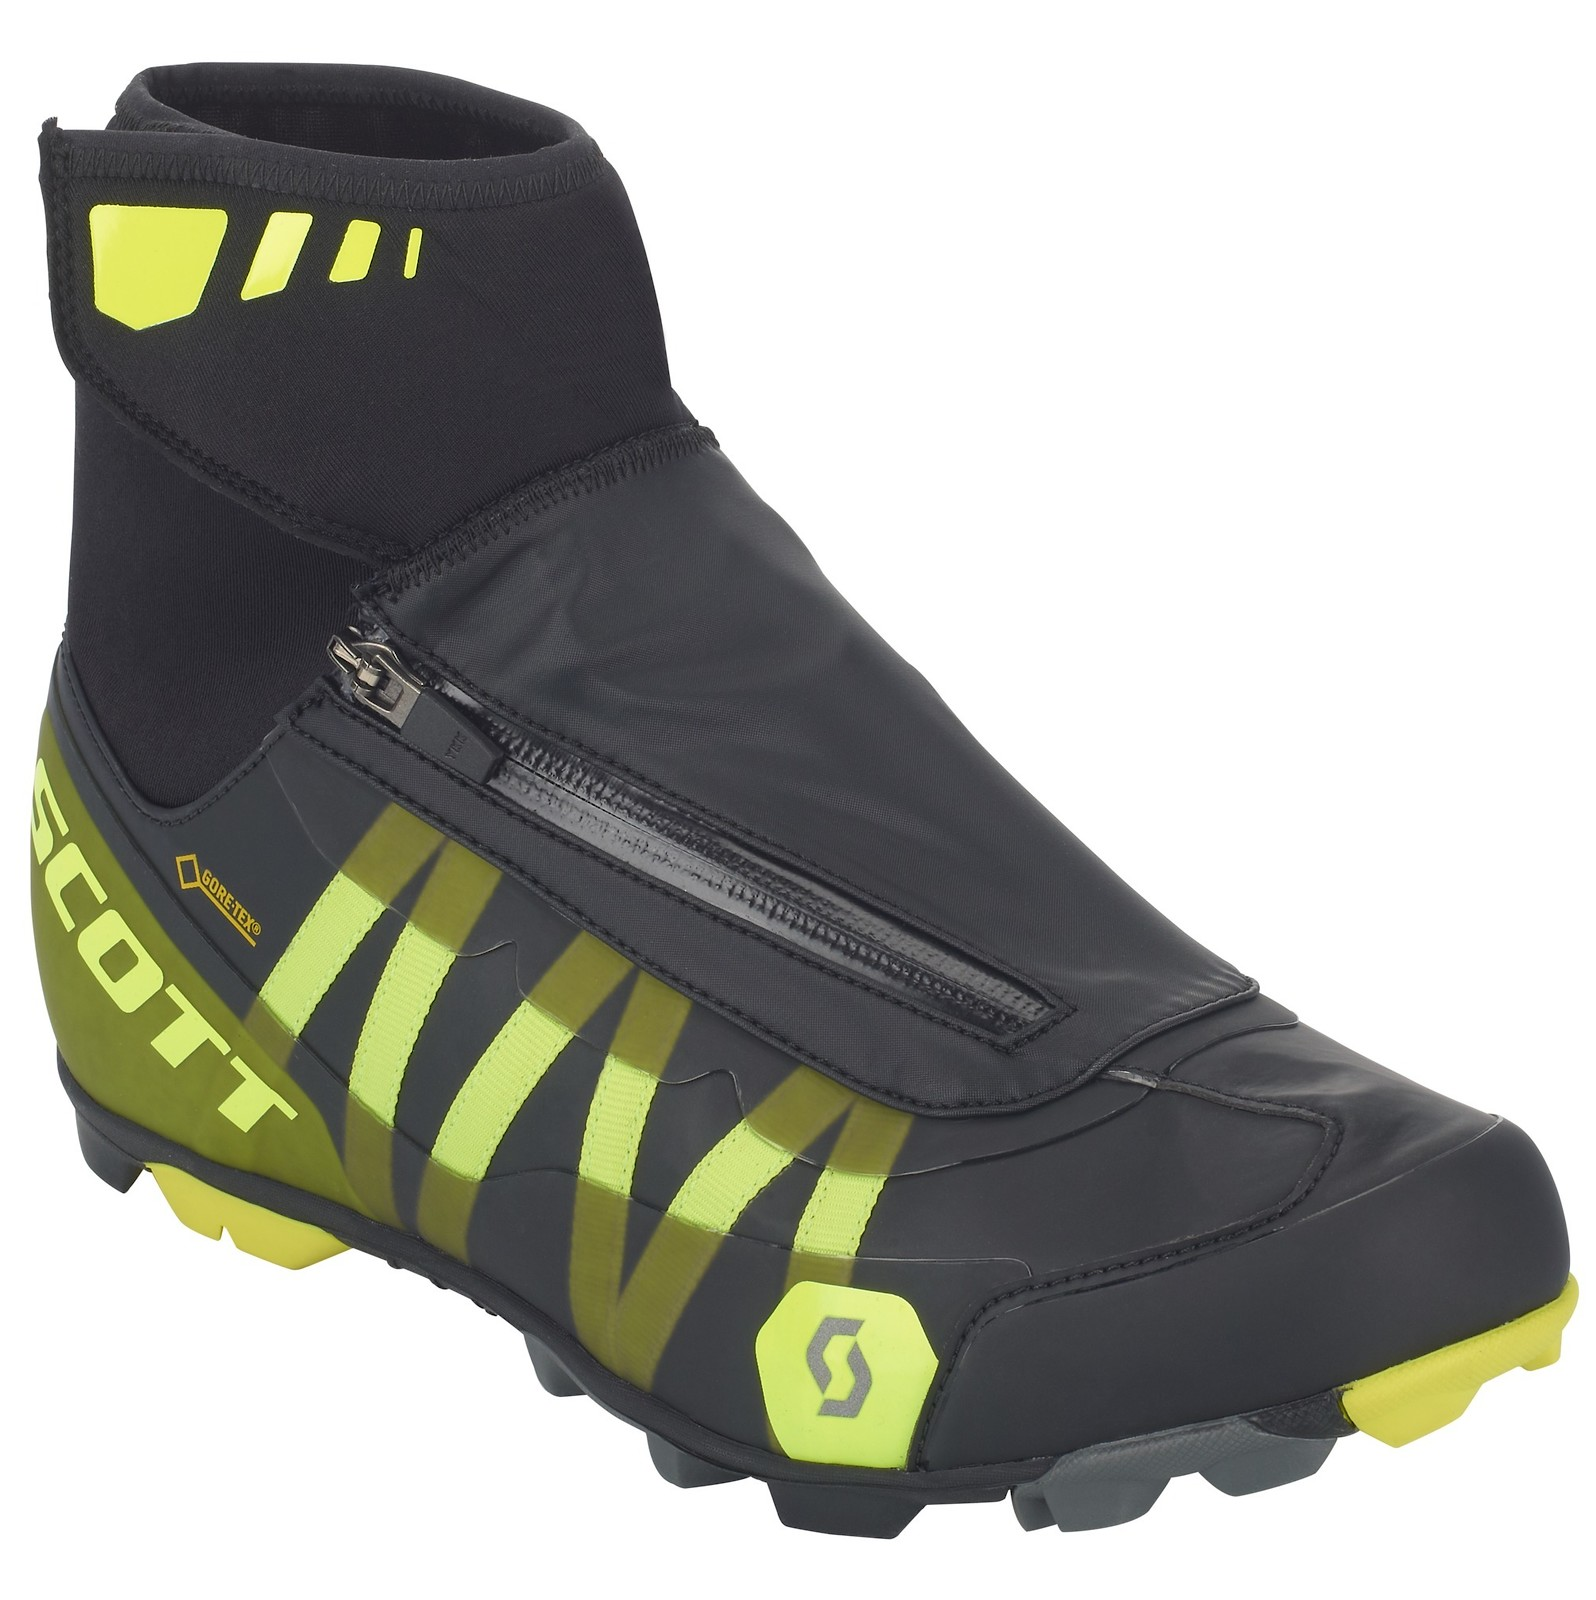 Scott Heater GORE-TEX shoe in black/sulphur yellow